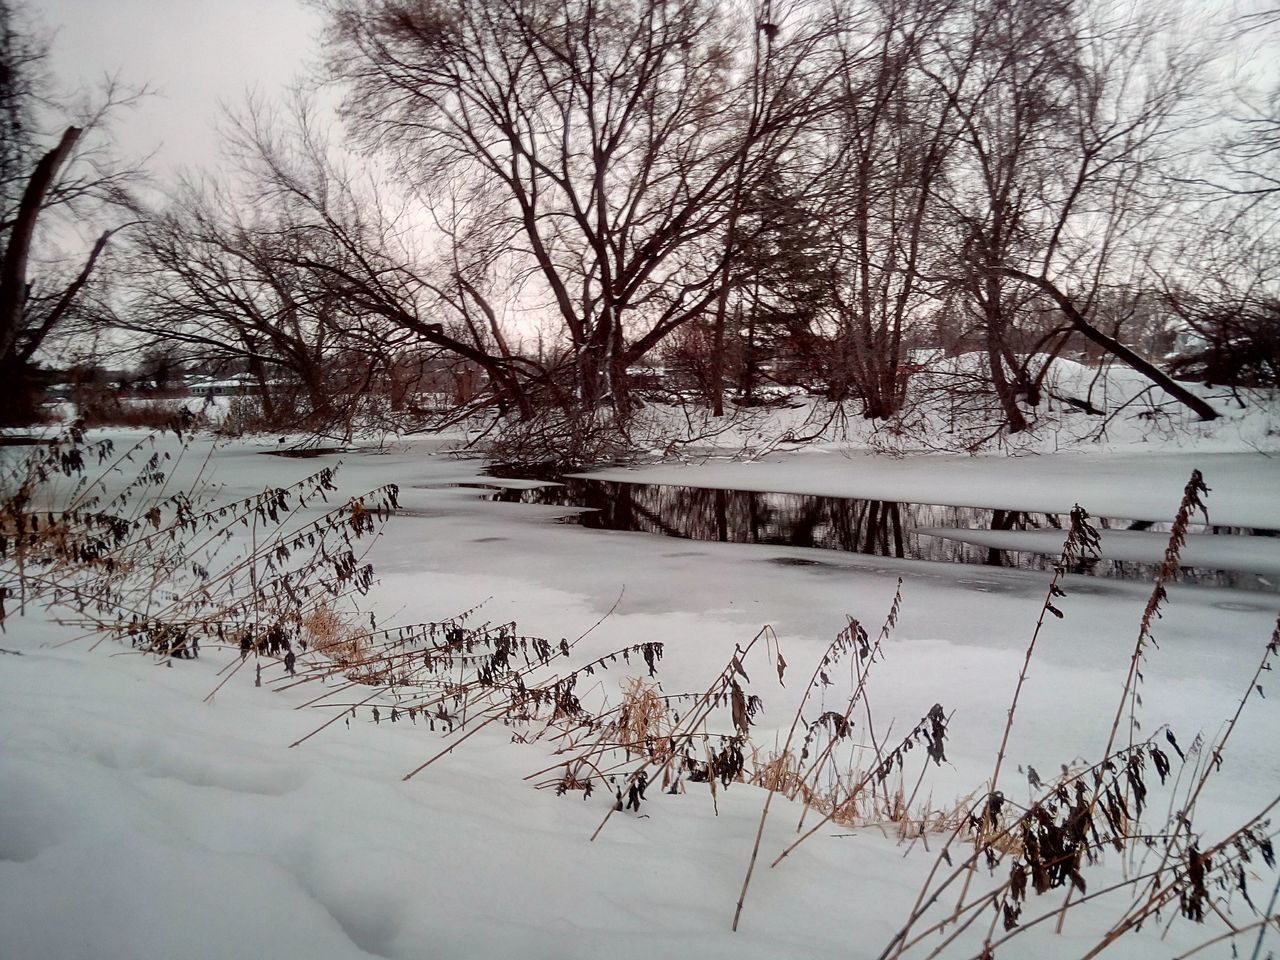 Relaxation Snow Winter Scene Stream Tranquility Scenic Peaceful Gray Skies Trees Water The Driftless Region Calmitude